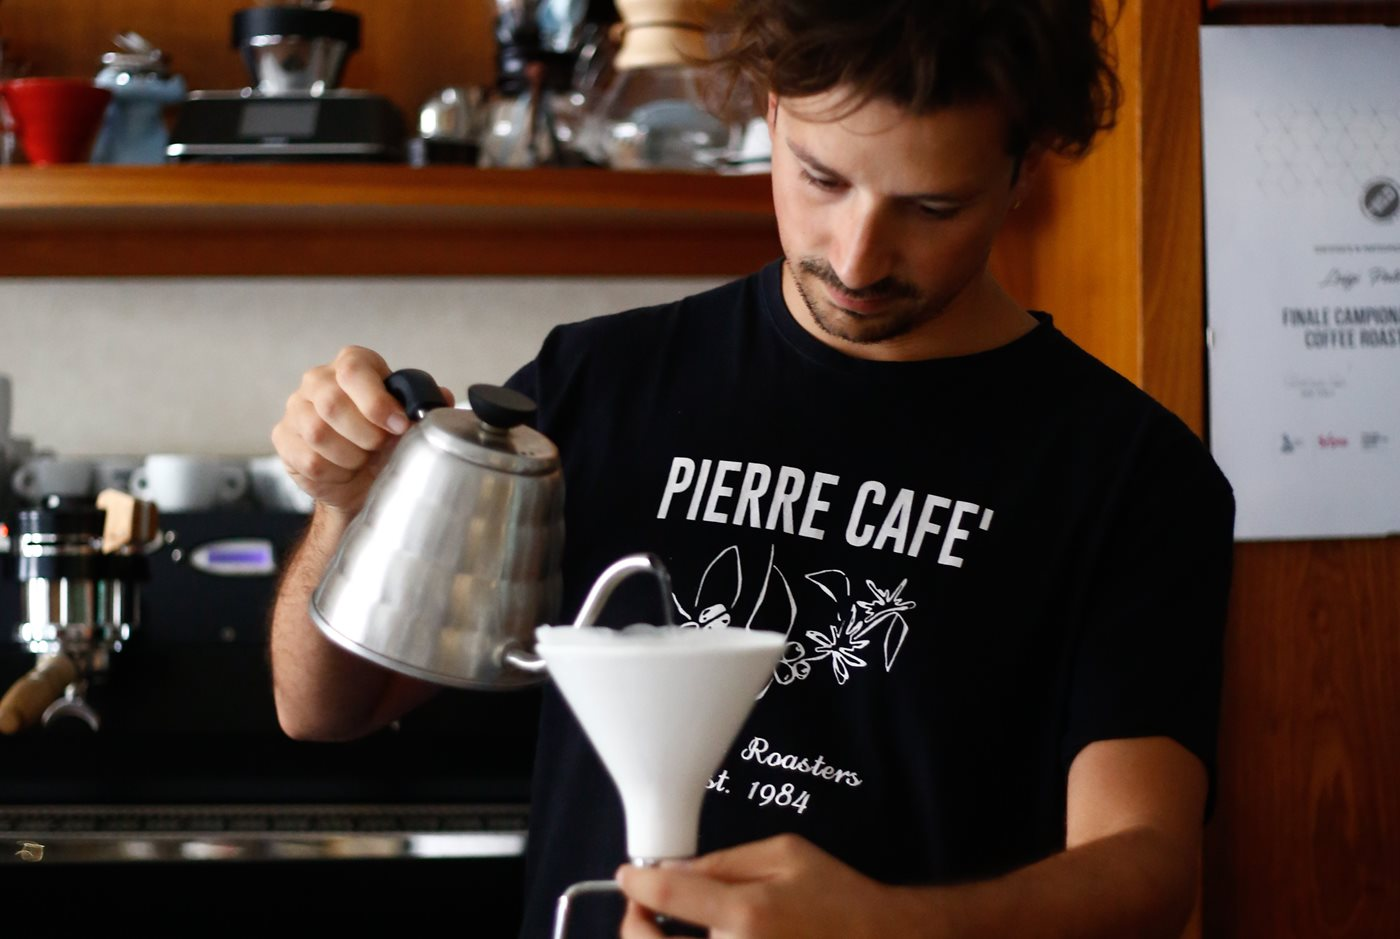 Pierre-Cafe.jpg